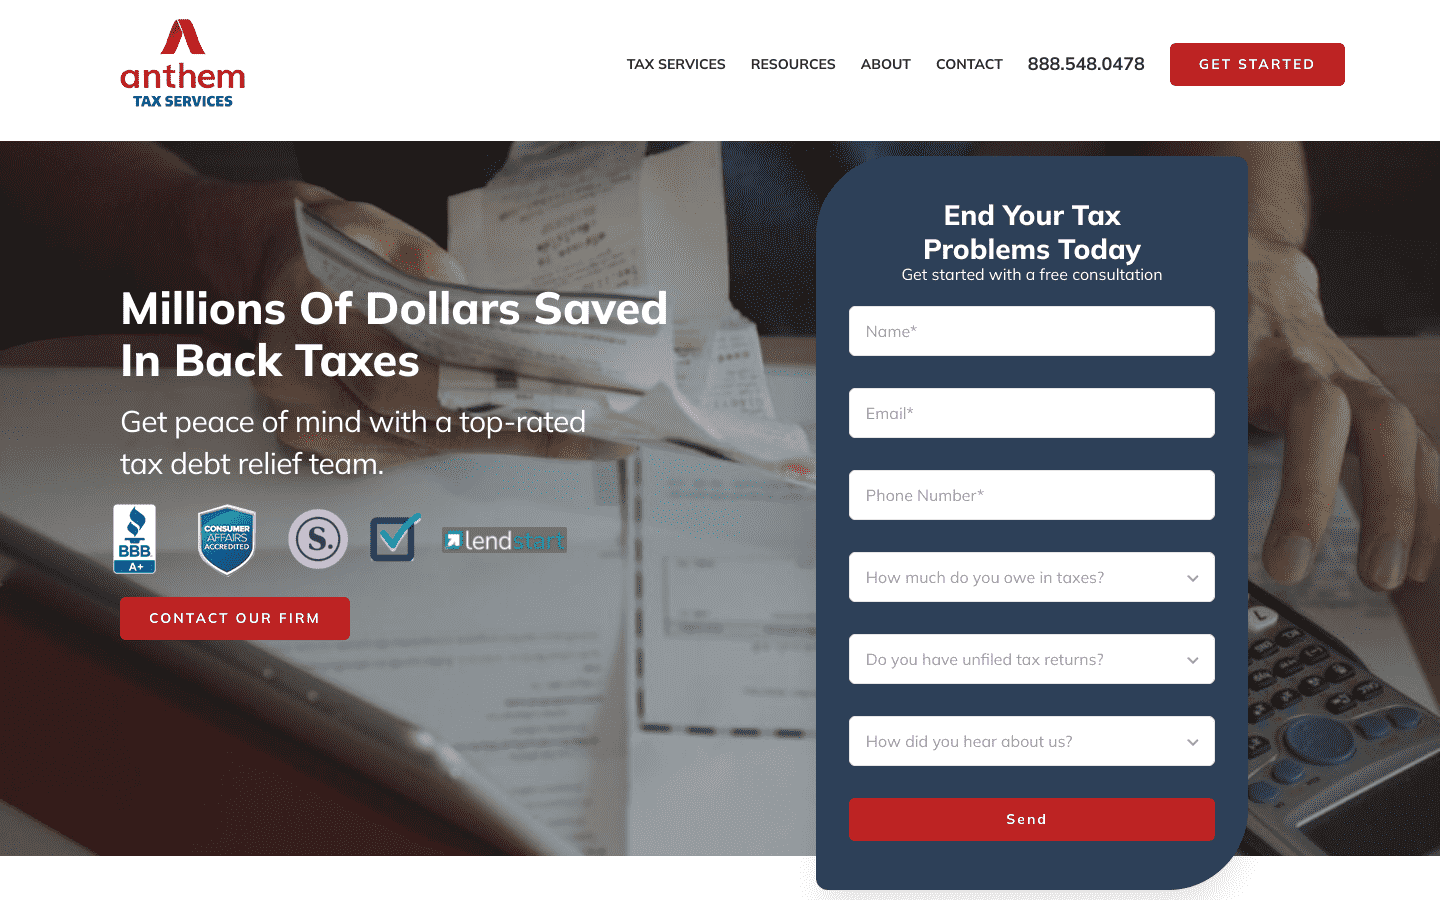 Anthem Tax Services reviews and complaints